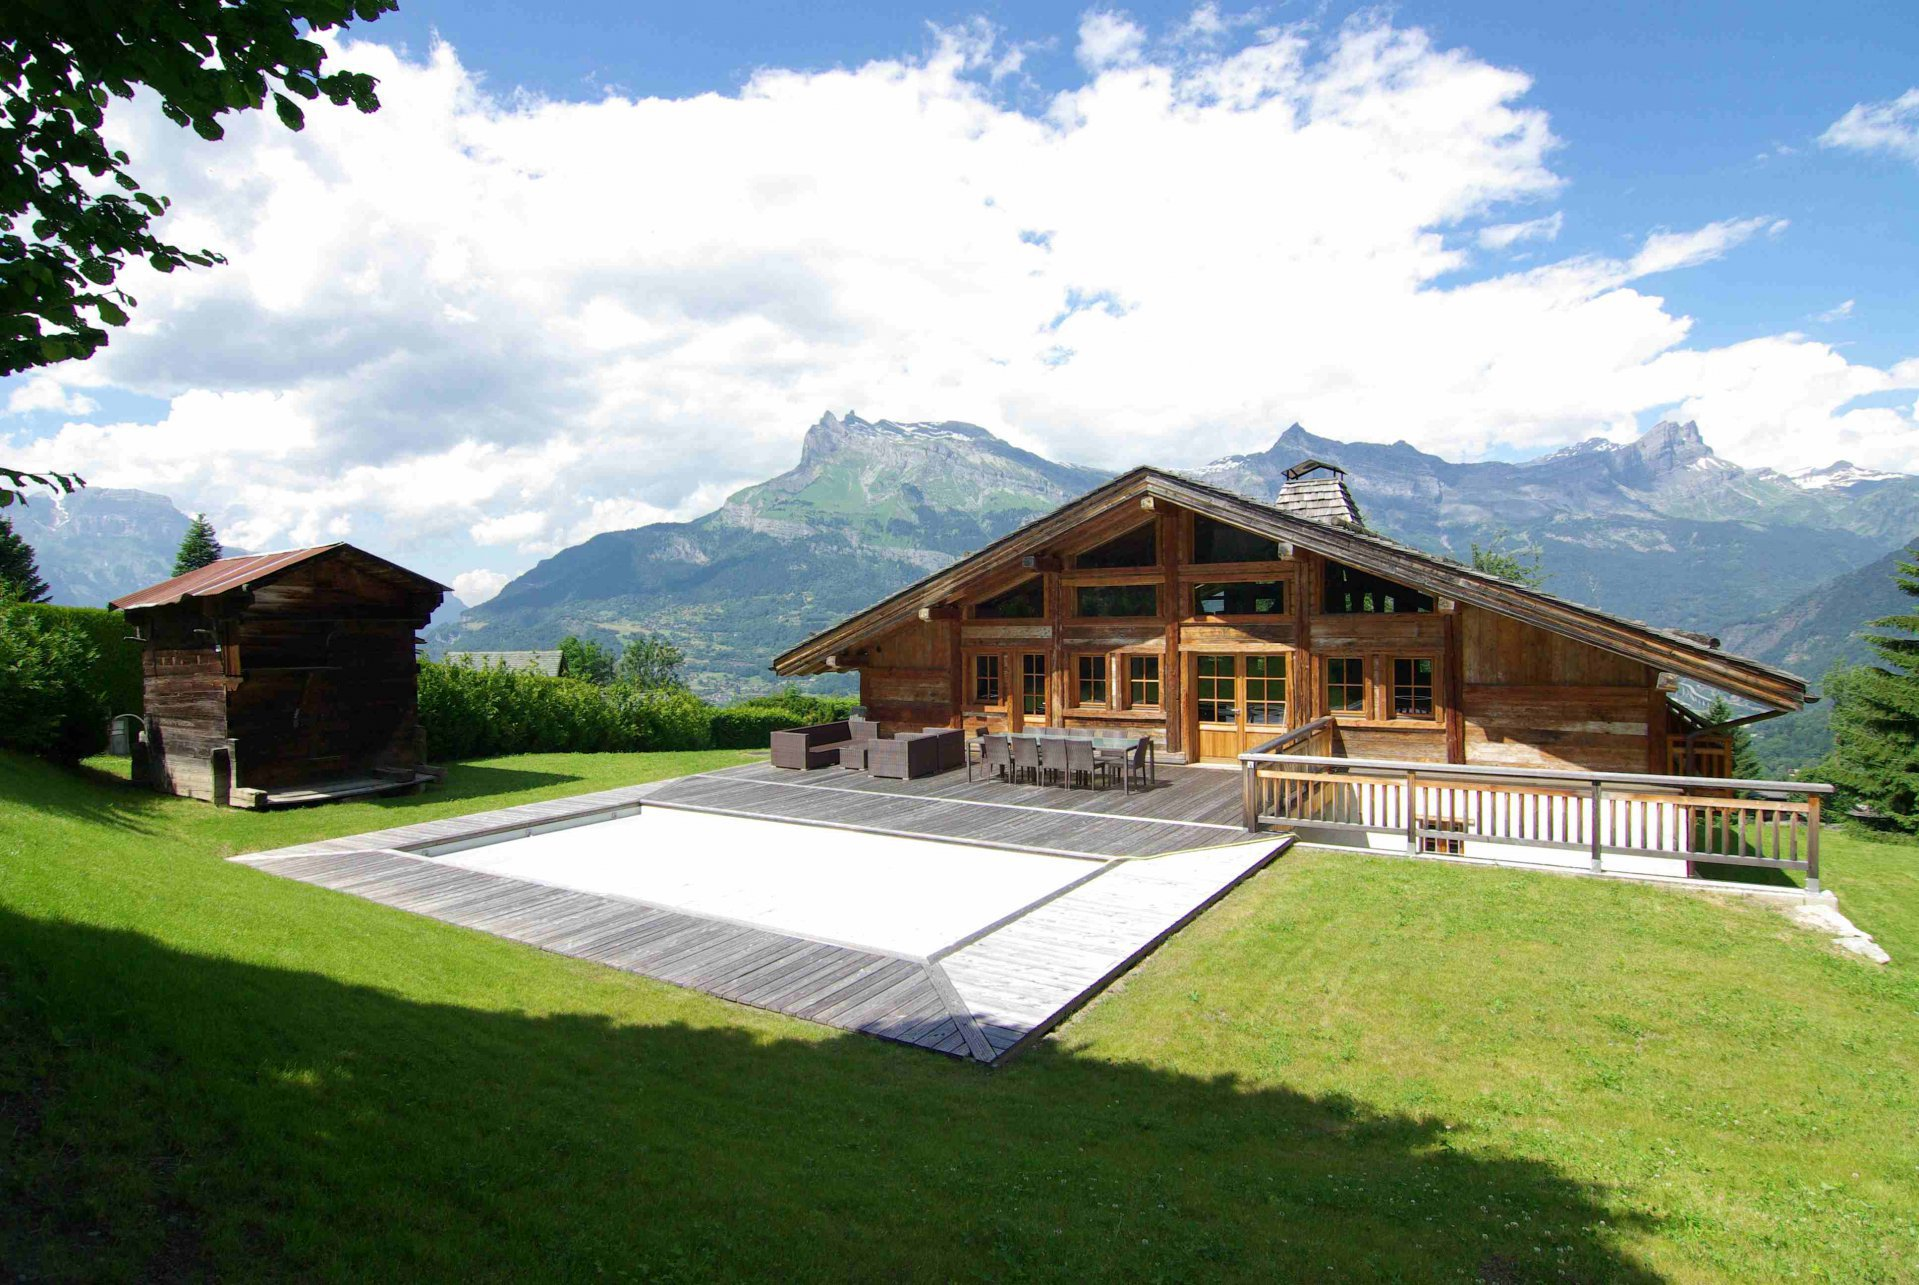 Farmhouse 5 master bedrooms Saint-Gervais Mont-Blanc